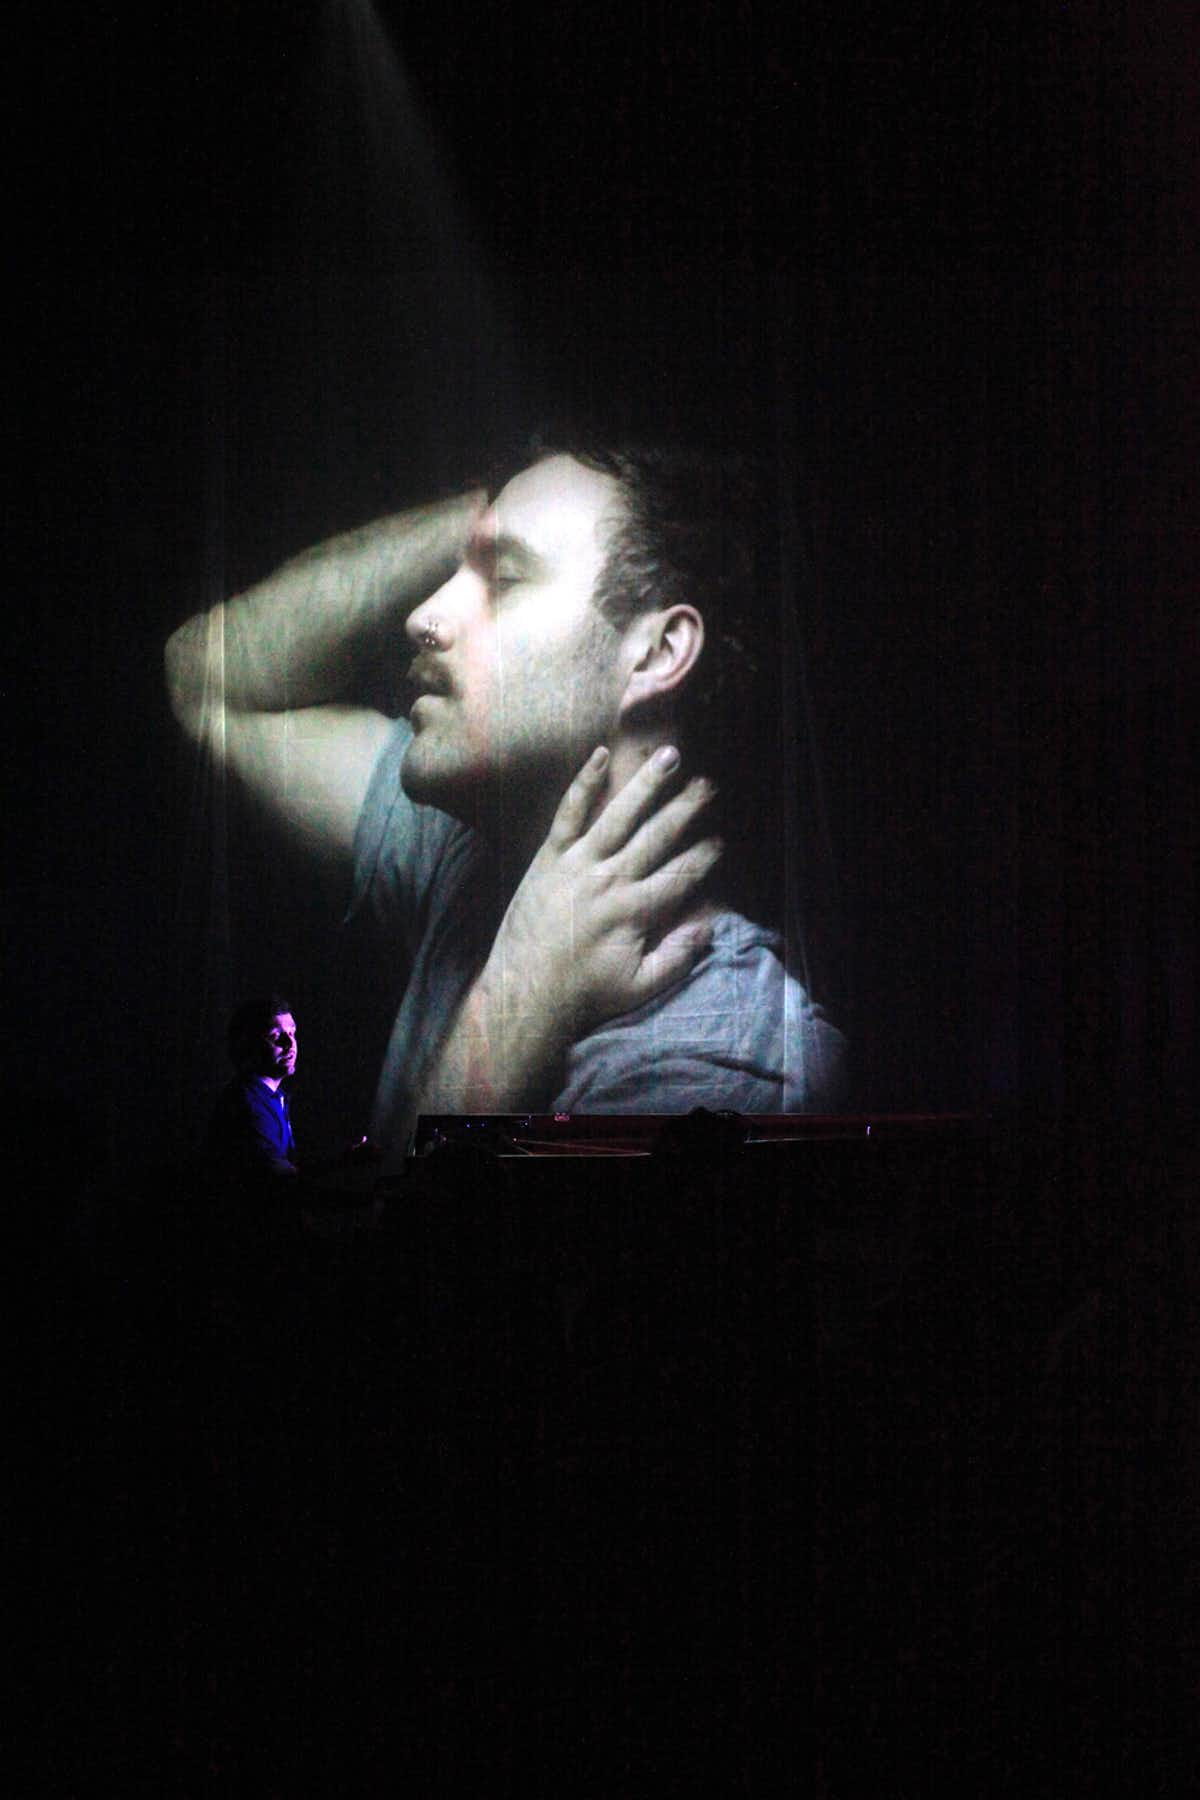 Dan Thorpe playing piano in front of a projected image of a man.